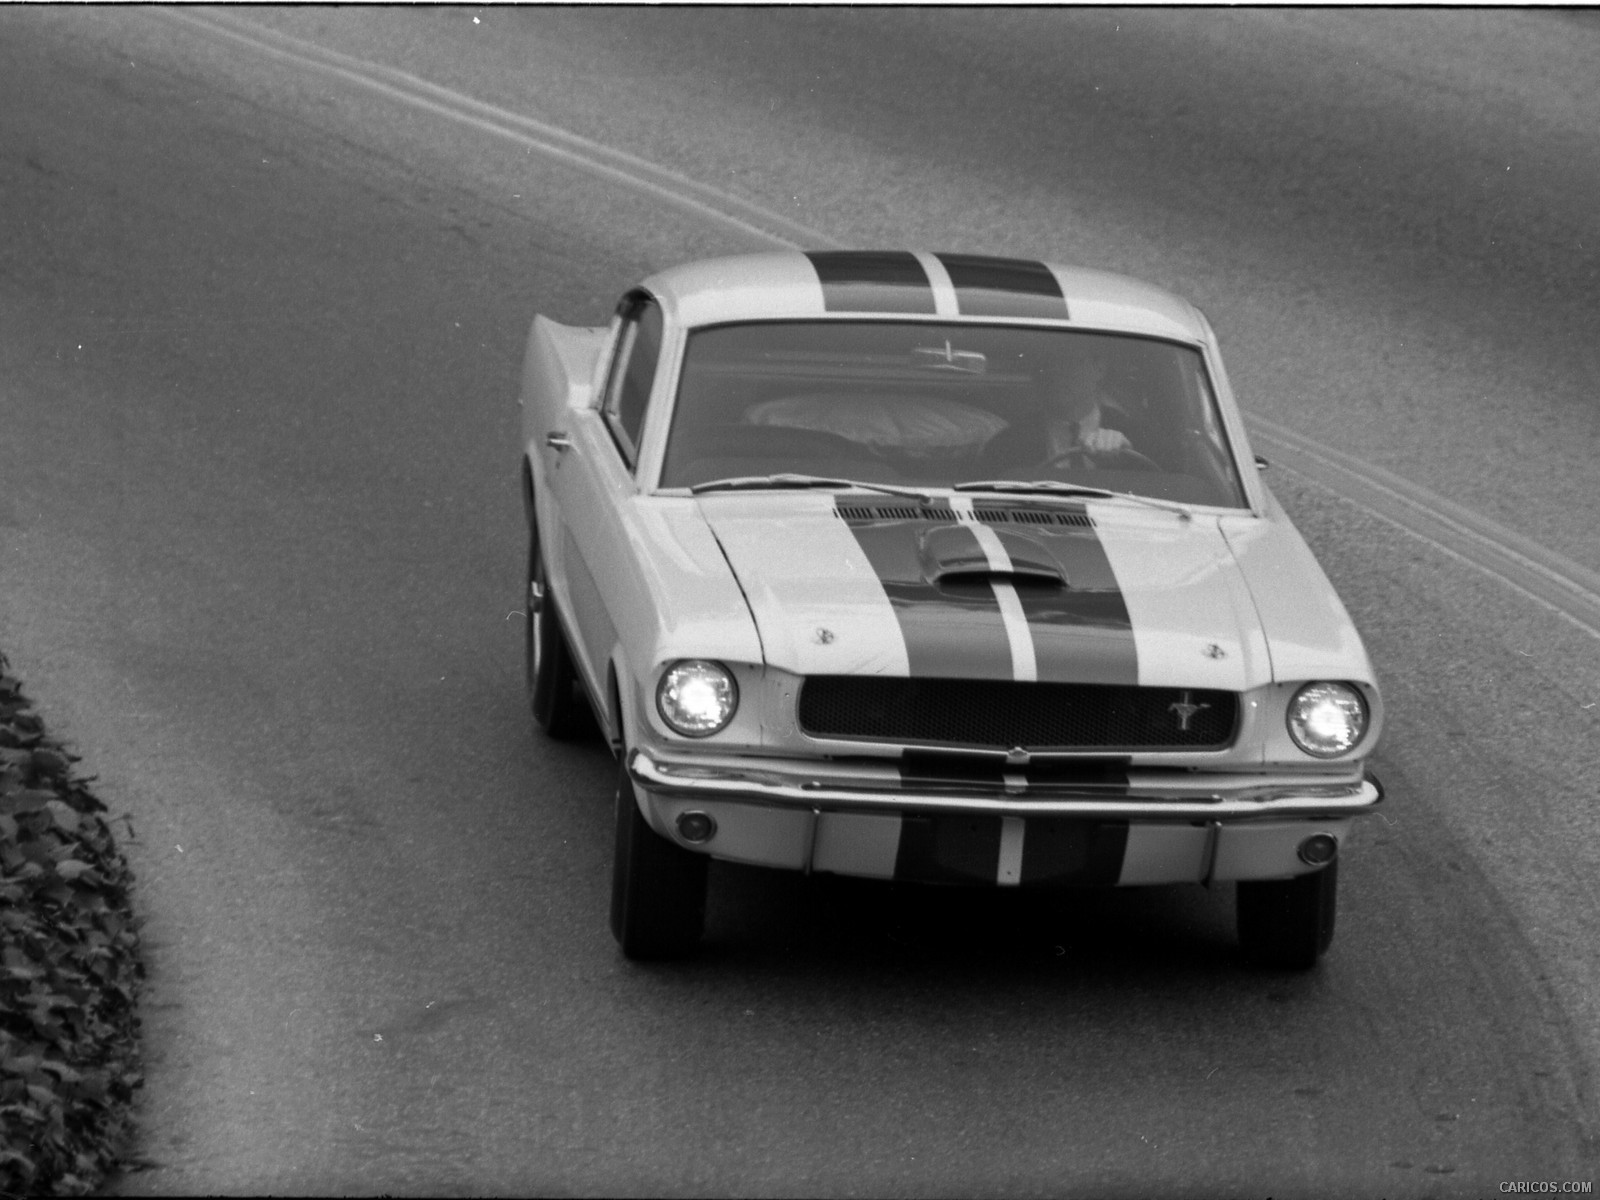 Ford Mustang Shelby GT350 resmi